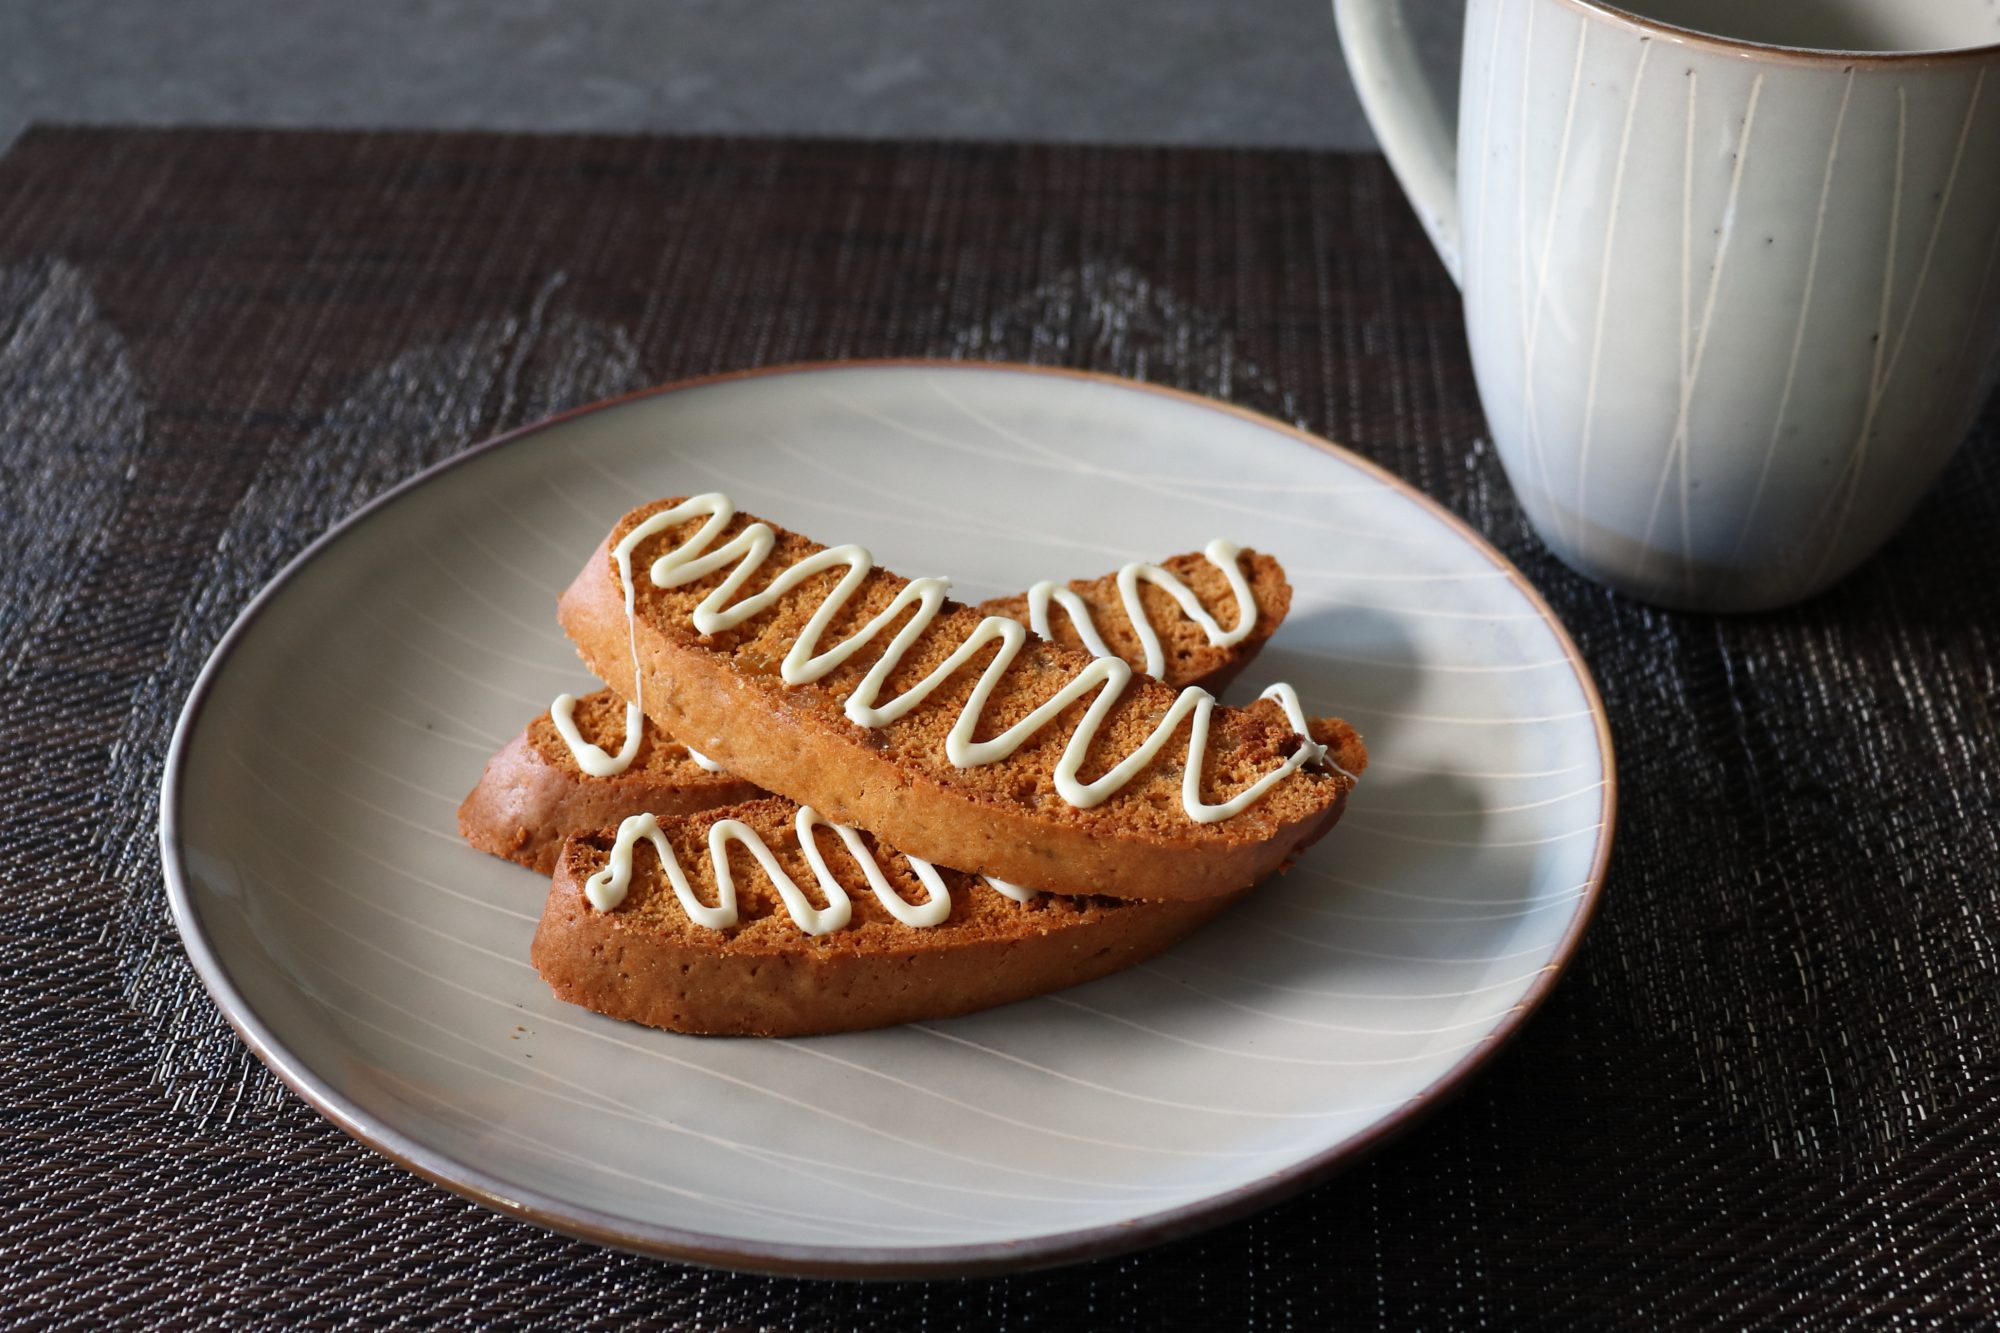 Three pale brown biscotti drizzled with white chocolate arranged on a plate